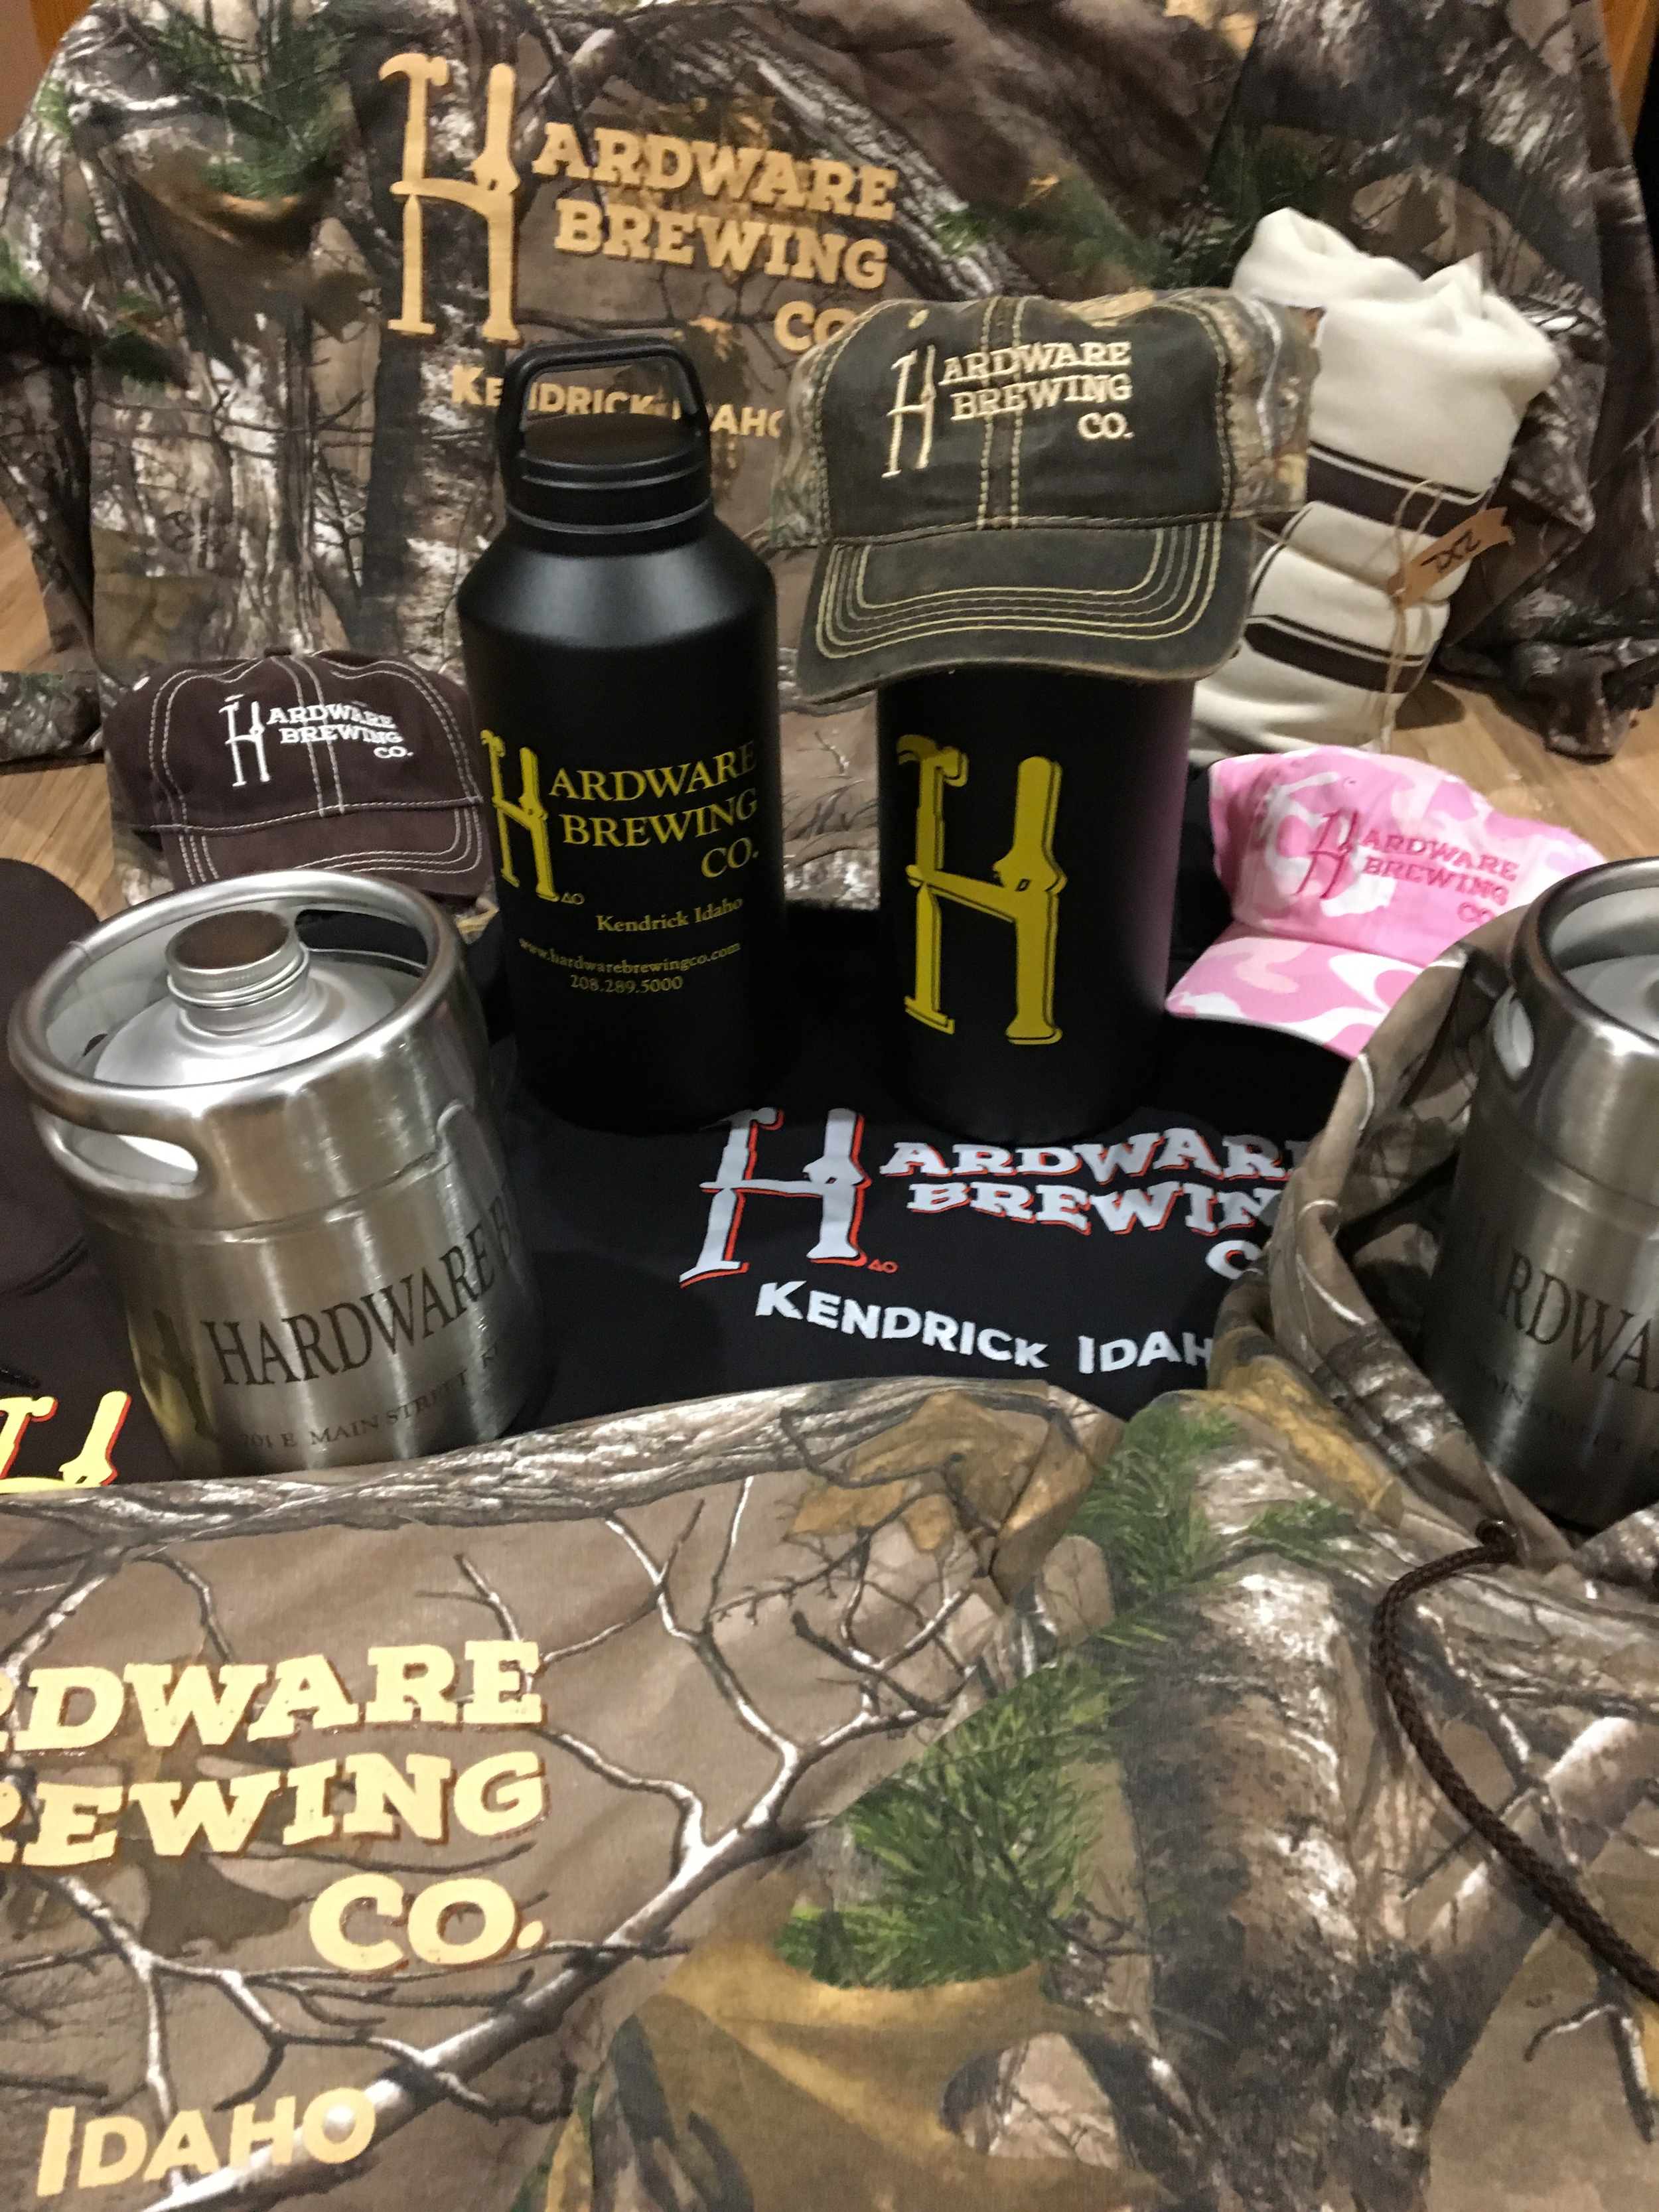 CAMO HOODIES, HATS, AND BEER GEAR IS IN! GREAT FALL GEAR AND CHRISTMAS GIFTS!